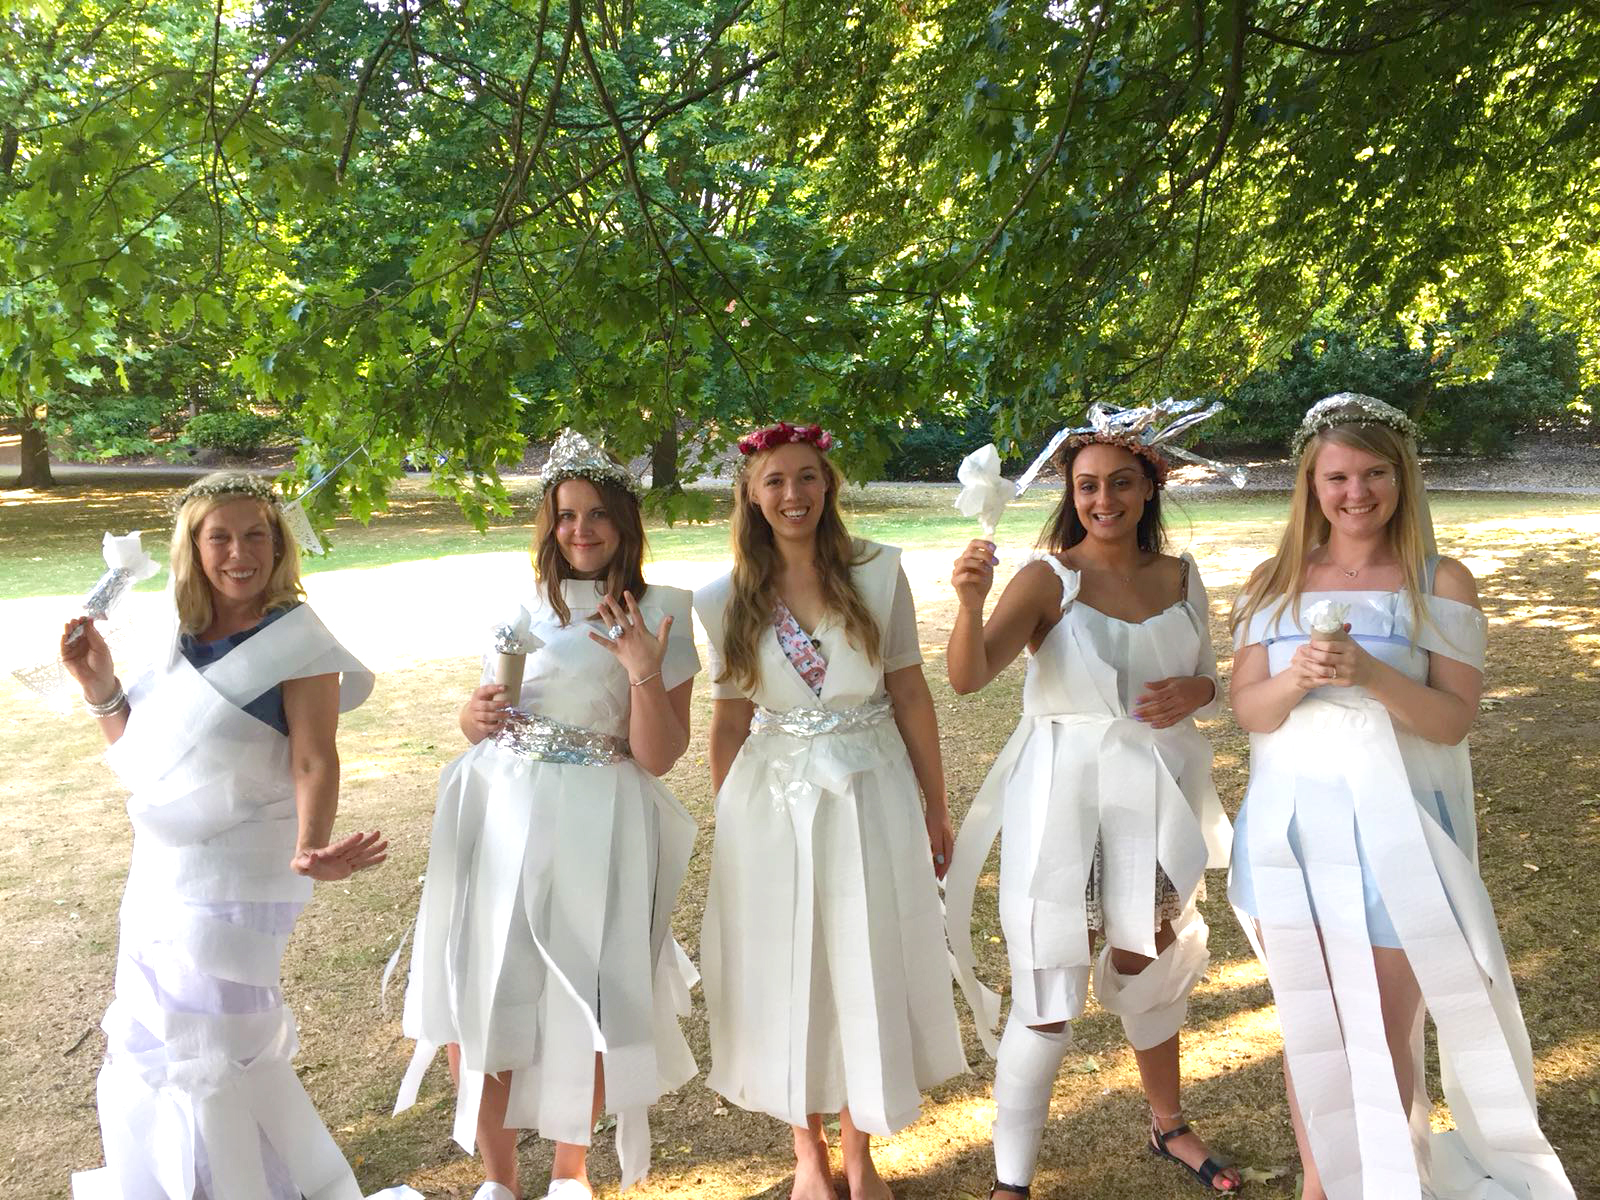 Hen do wedding dress game with dresses made of toilet roll and silver foil.